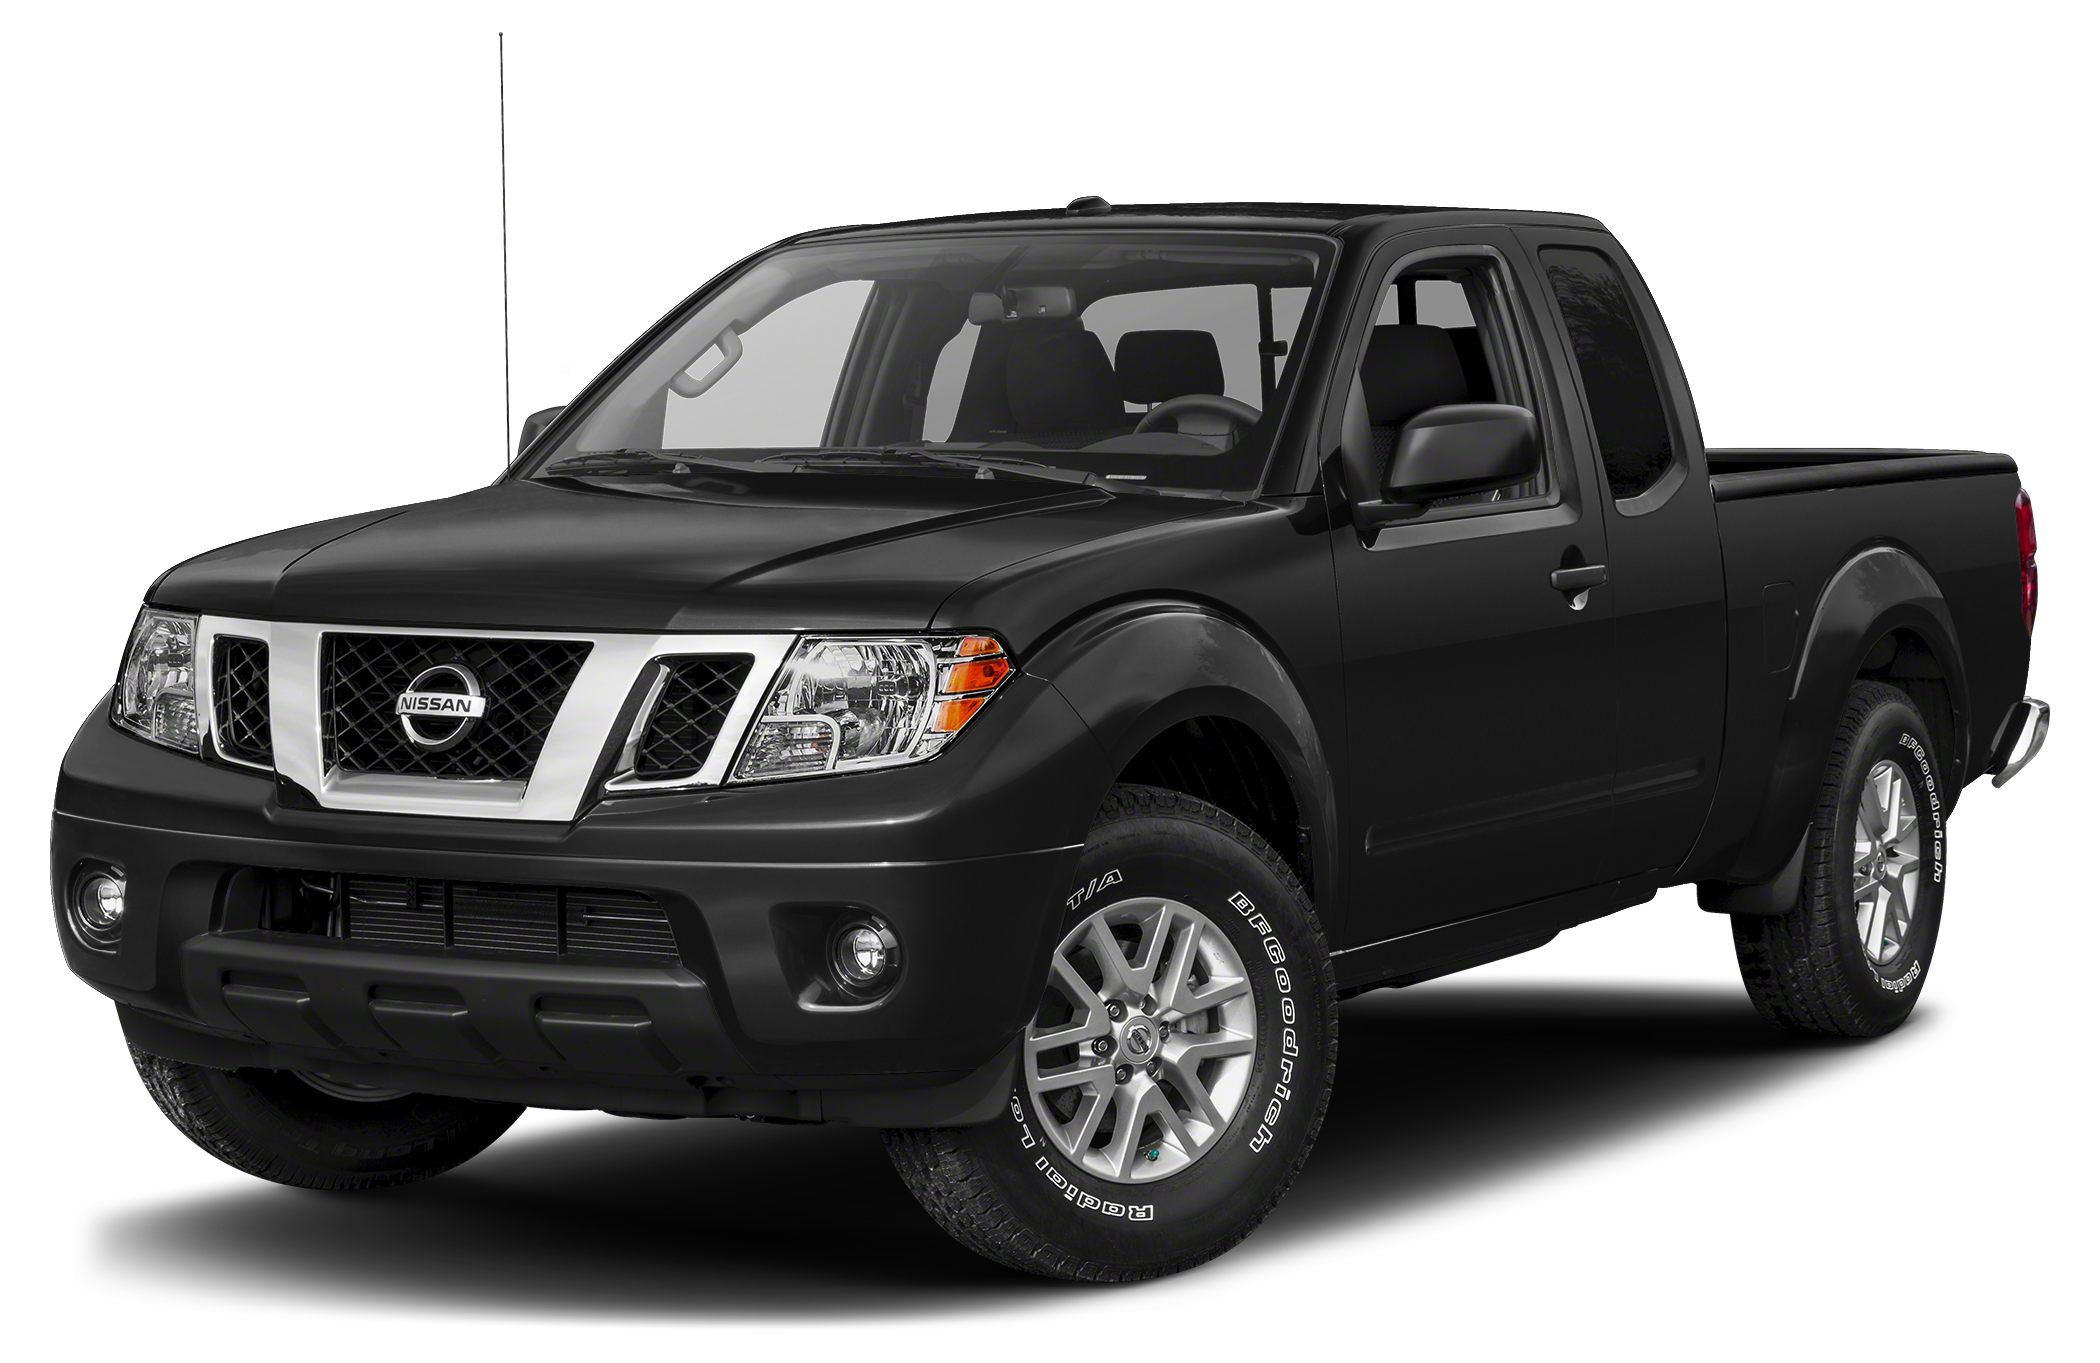 2015 Nissan Frontier SV The Nissan Frontier might be a midsize truck but it does not skimp on att